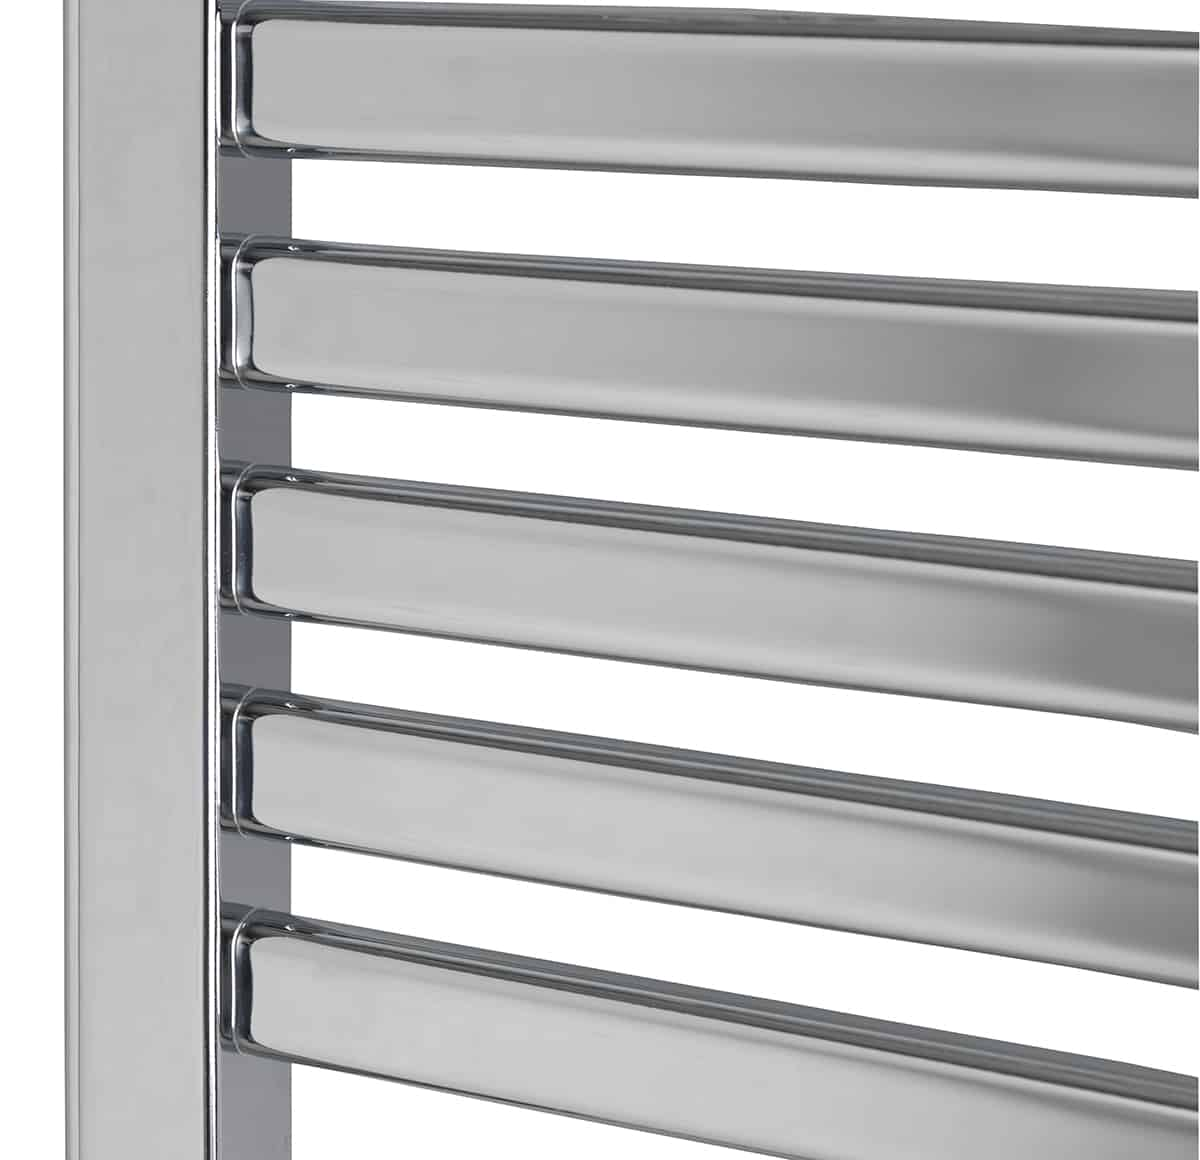 Alpine Modern Heated Towel Rail Warmer Chrome: CROSBY Flat Tube Modern Heated Towel Rail / Warmer, Chrome